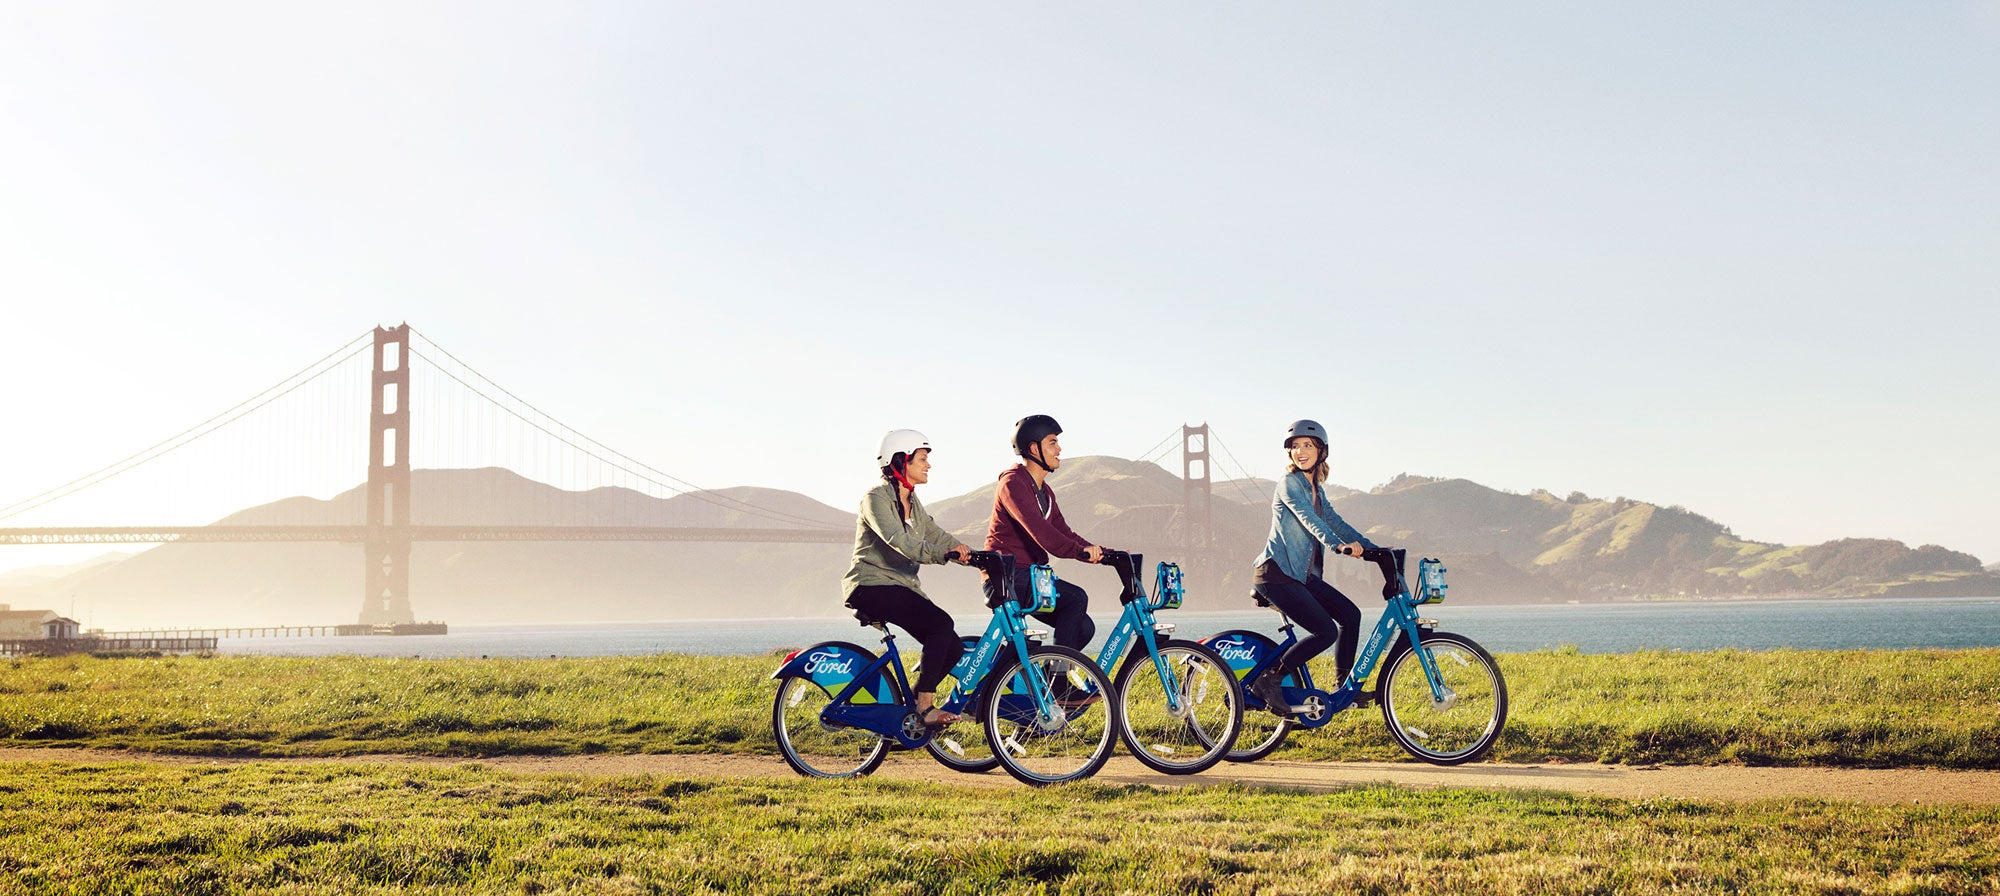 GoBike riders near the Golden Gate Bridge exchange pleasantries